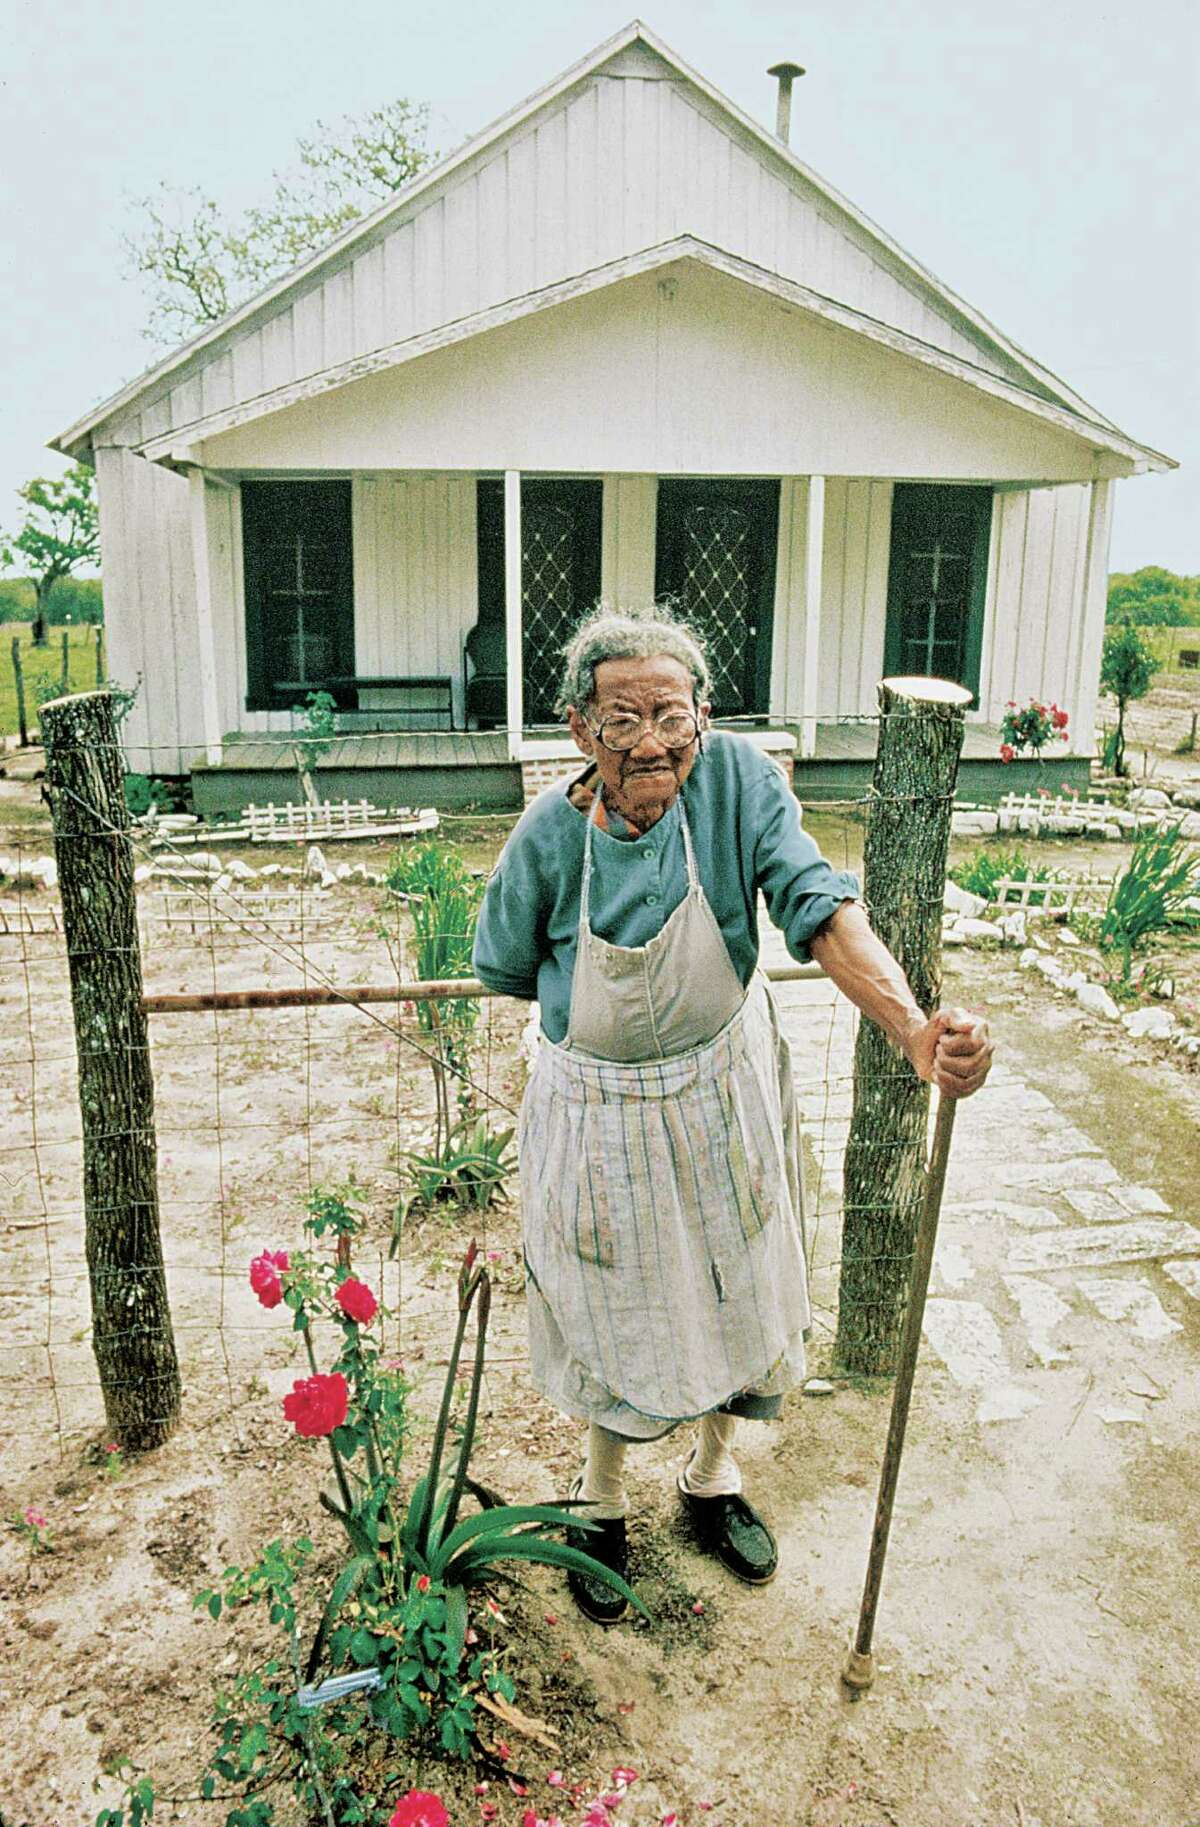 """The Texas Rose Rustlers gathered cuttings of a """"Maggie"""" rose from the swept dirt yard of Mattie Breedlove. Bill Welch had found the same rose growing in his wife's grandmother's backyard in Louisiana, and named it for her. The rustlers found """"Maggie"""" even in Bermuda, proving that although its original identity was lost, the rose """"most certainly was an introduced variety,"""" says Antique Rose Emporium owner Mike Shoup."""